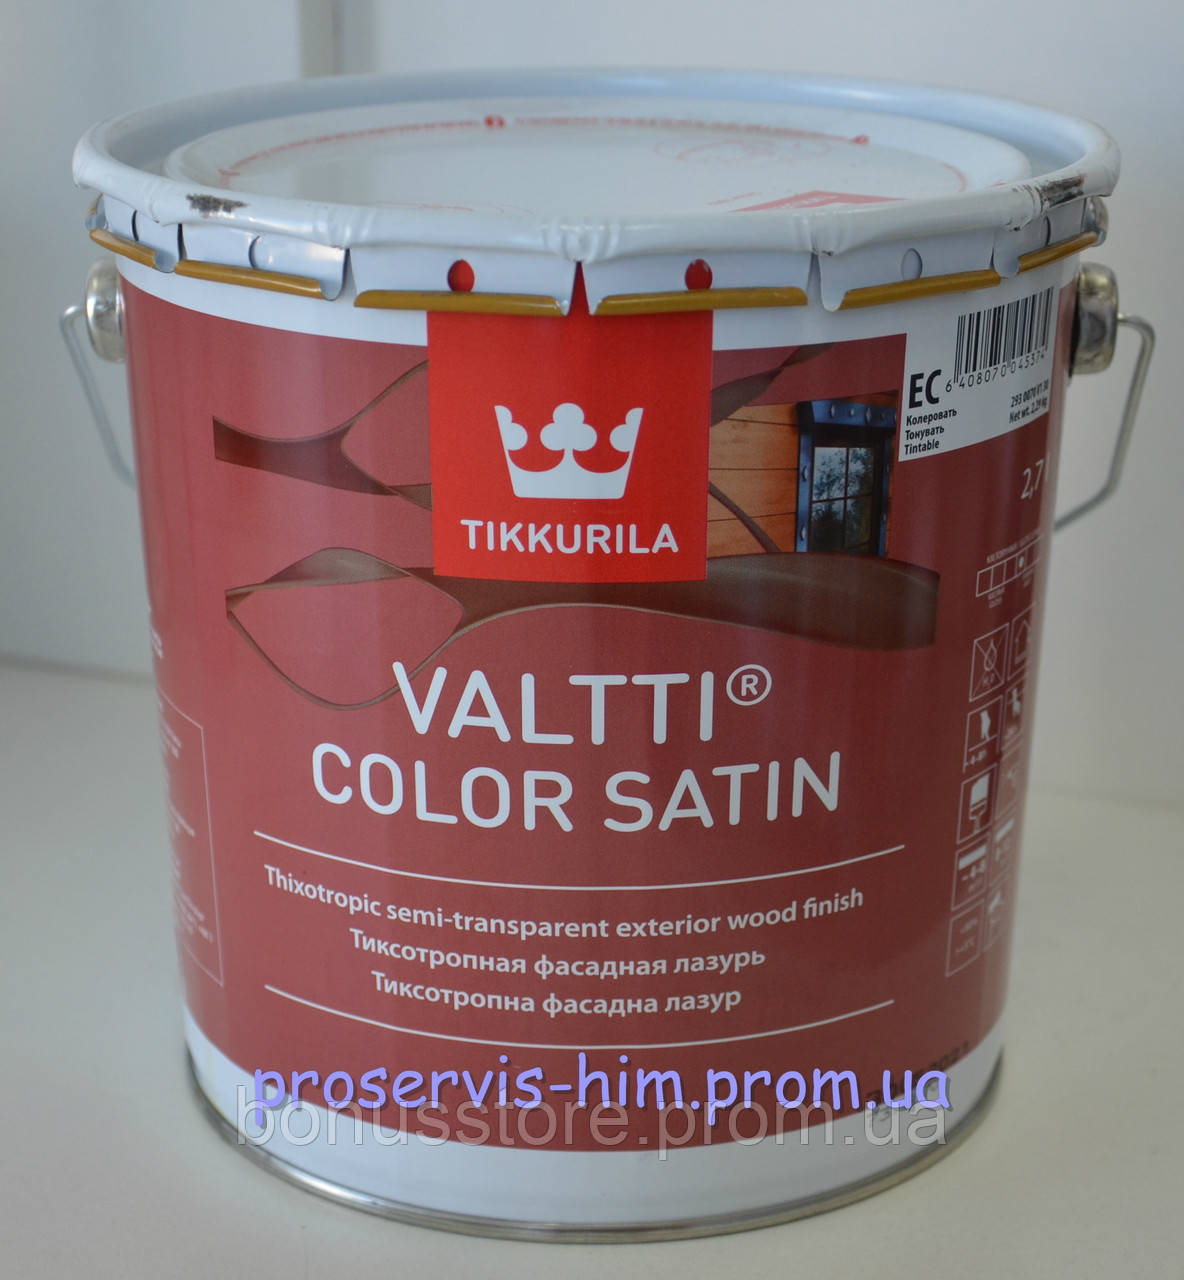 Валтти Колор - антисептик с сатиновым блеском Tikkurila Valtti Color Satin, 2,7л - ПРОФ-ХИМ express в Виннице